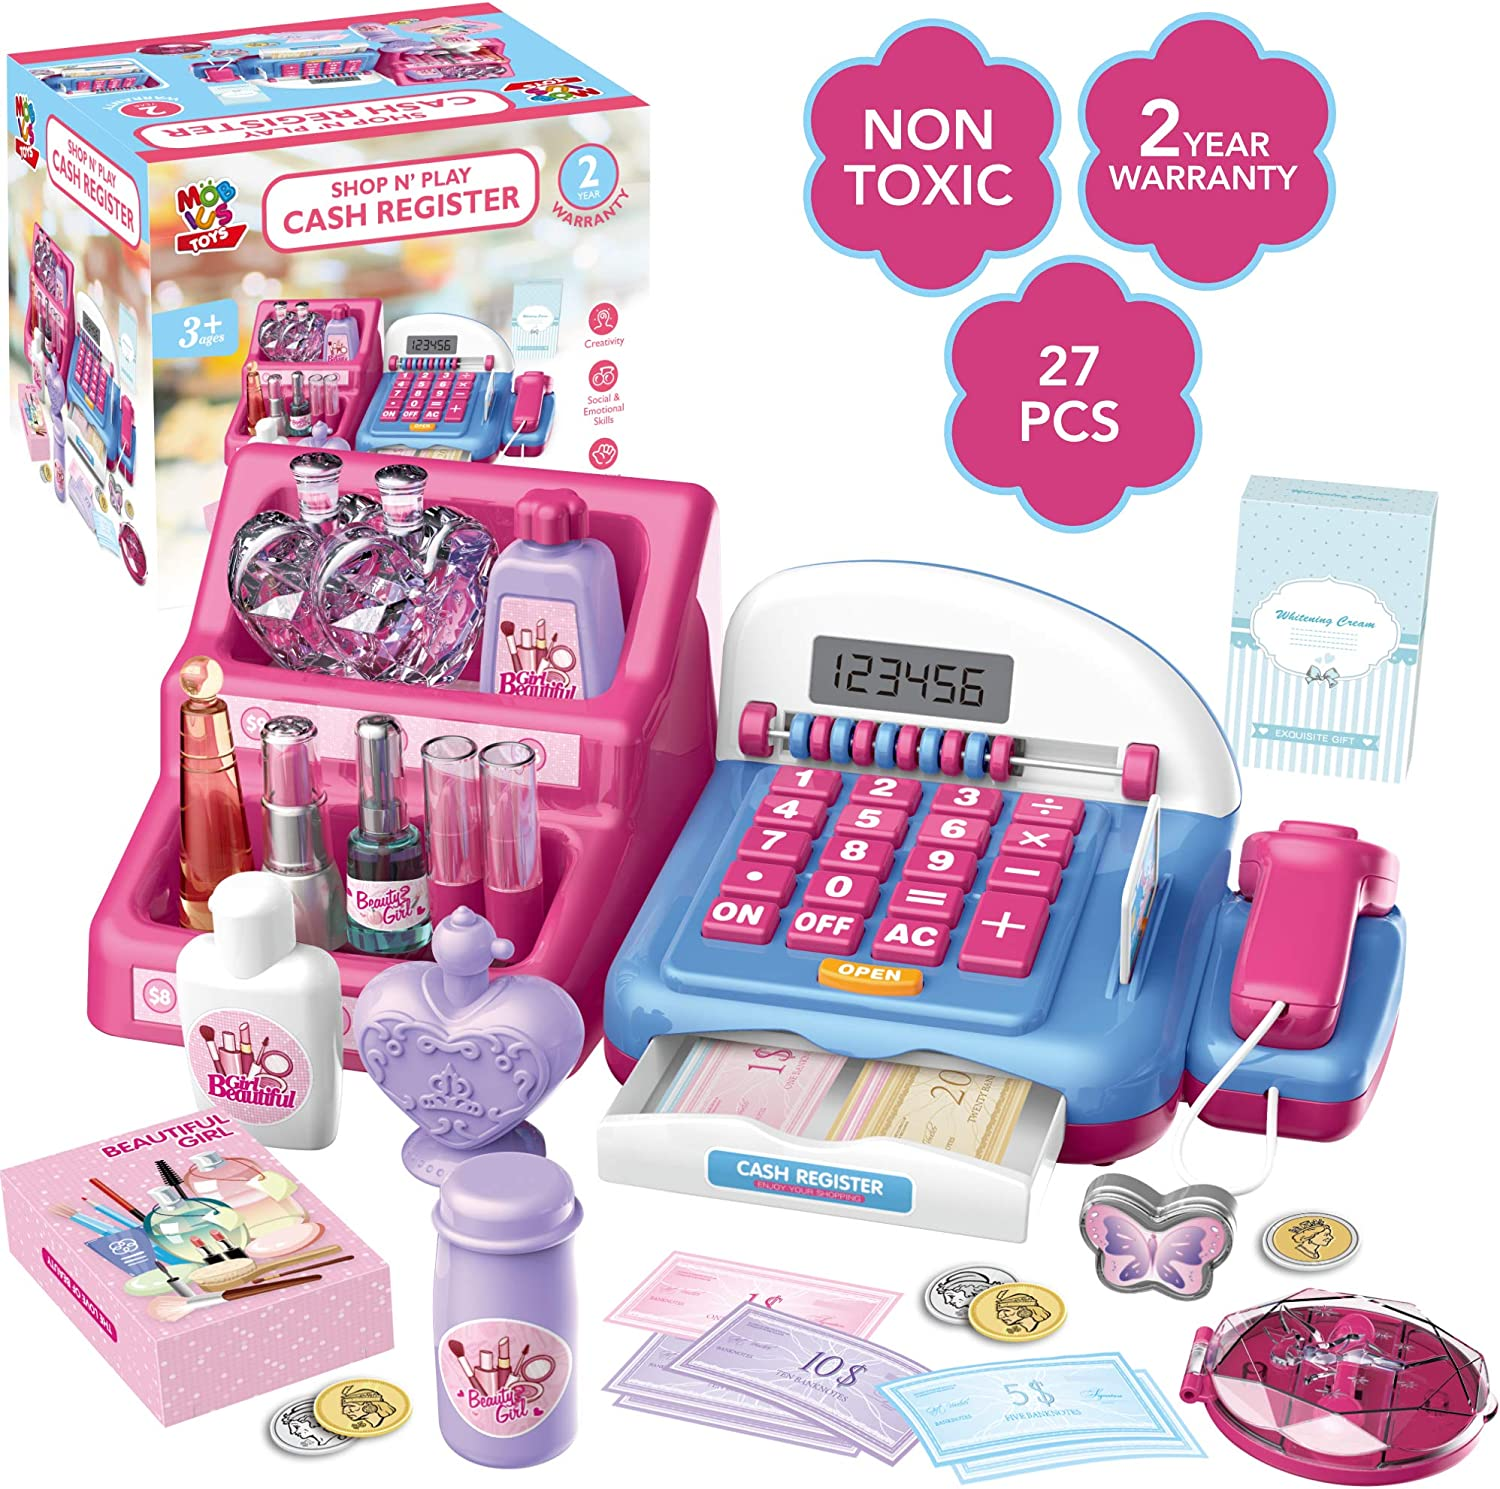 Shop N' Play Beauty Salon Cash Register Playset for Girls w/ Pretend Play Calculator, Money, Scanner, Credit Card & Makeup, Realistic Actions & Sounds, Educational Counting Toy for Kids 3-8 Years Old